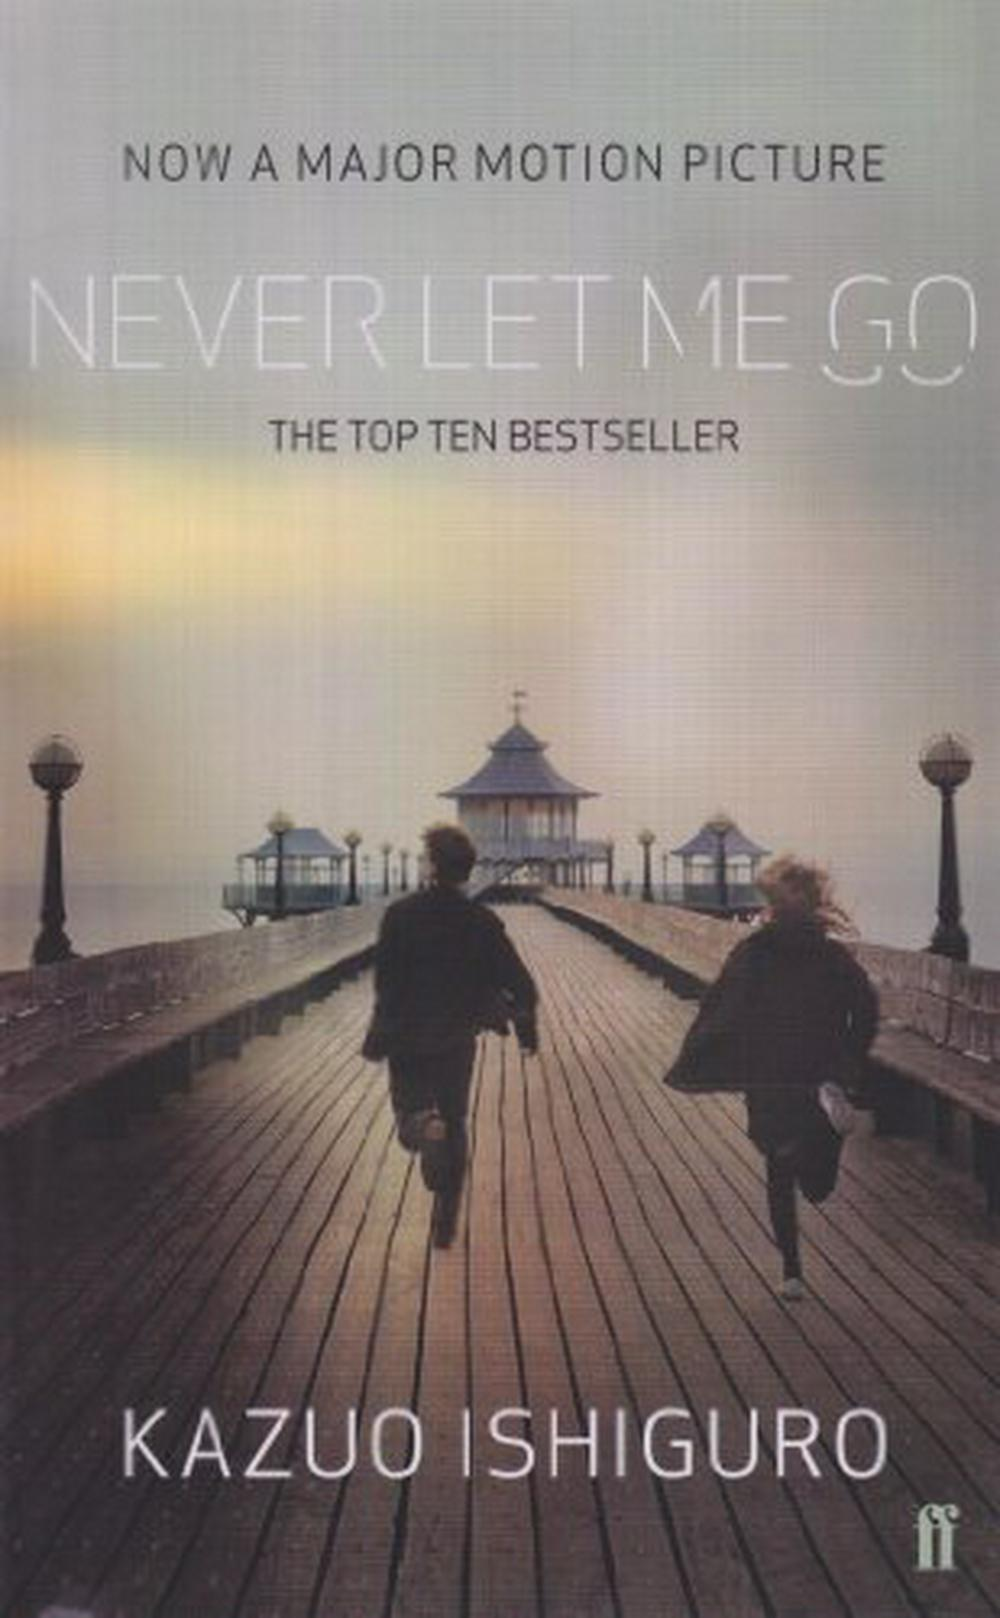 Never Let Me Go by Kazuo Ishiguro, ISBN: 9780571272136